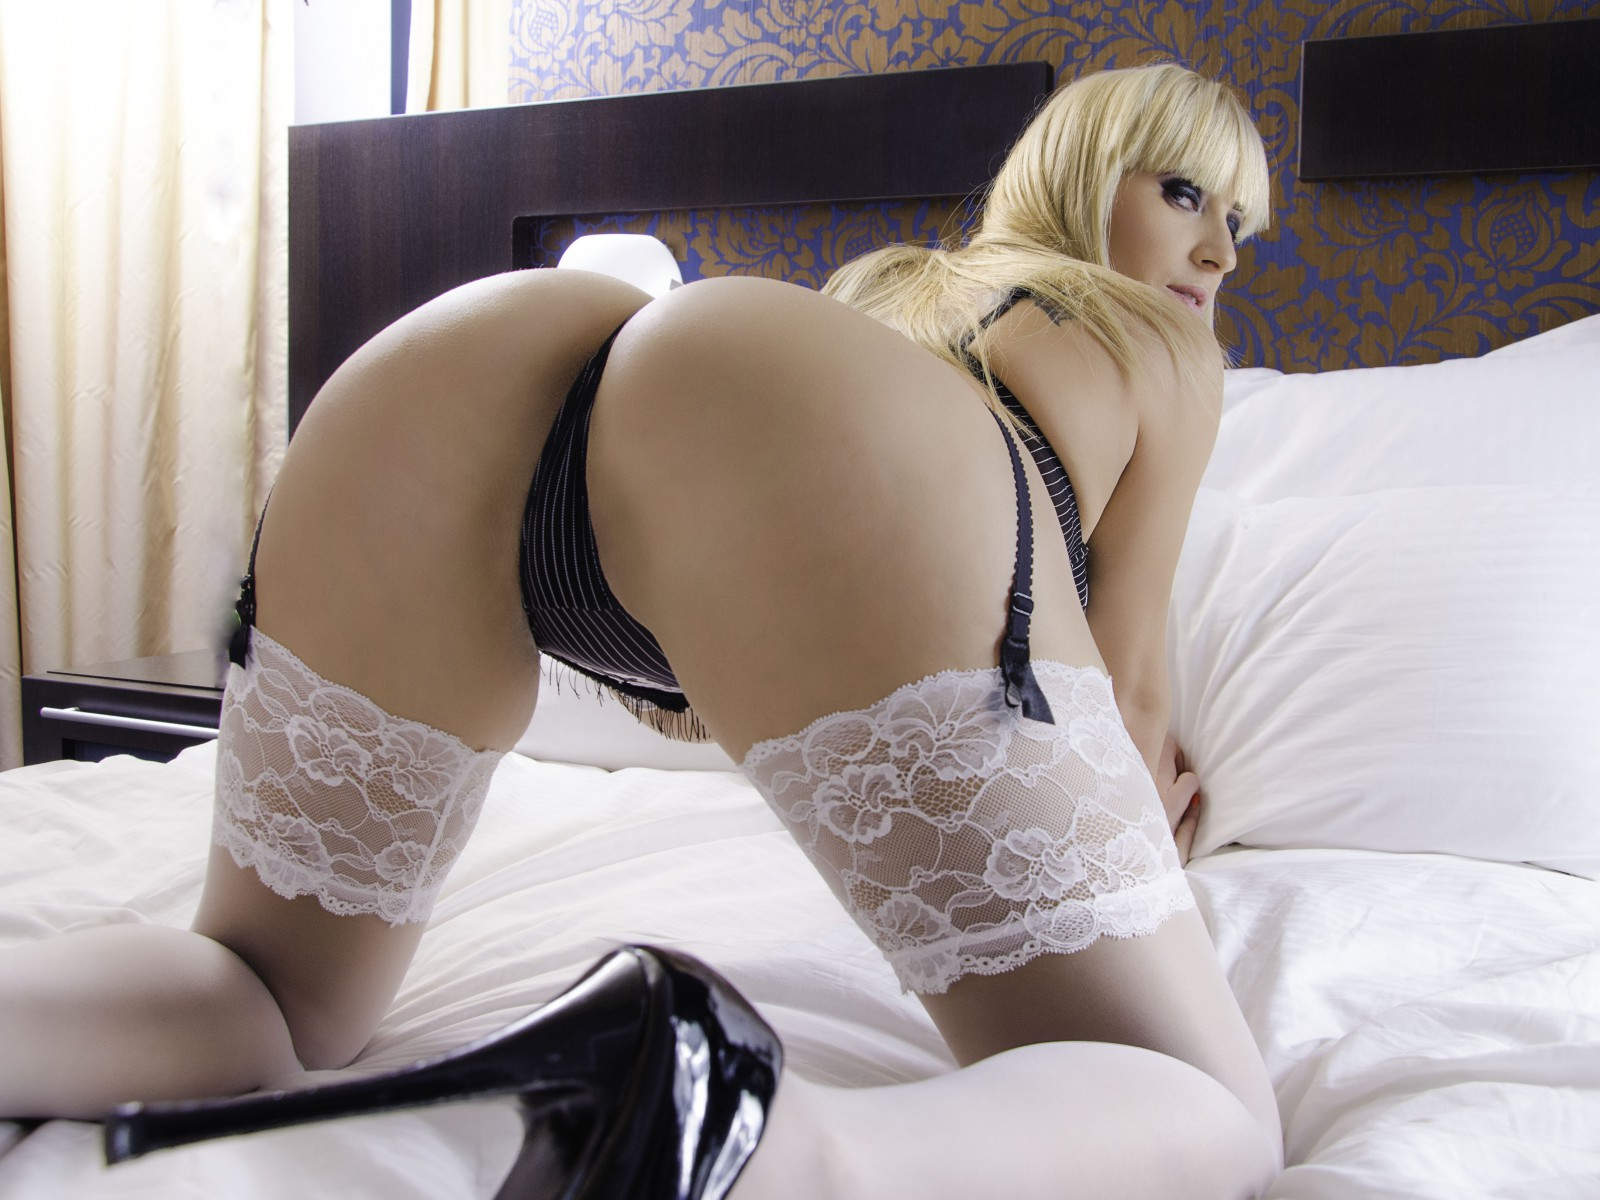 blonde Jasmin sex chat girl